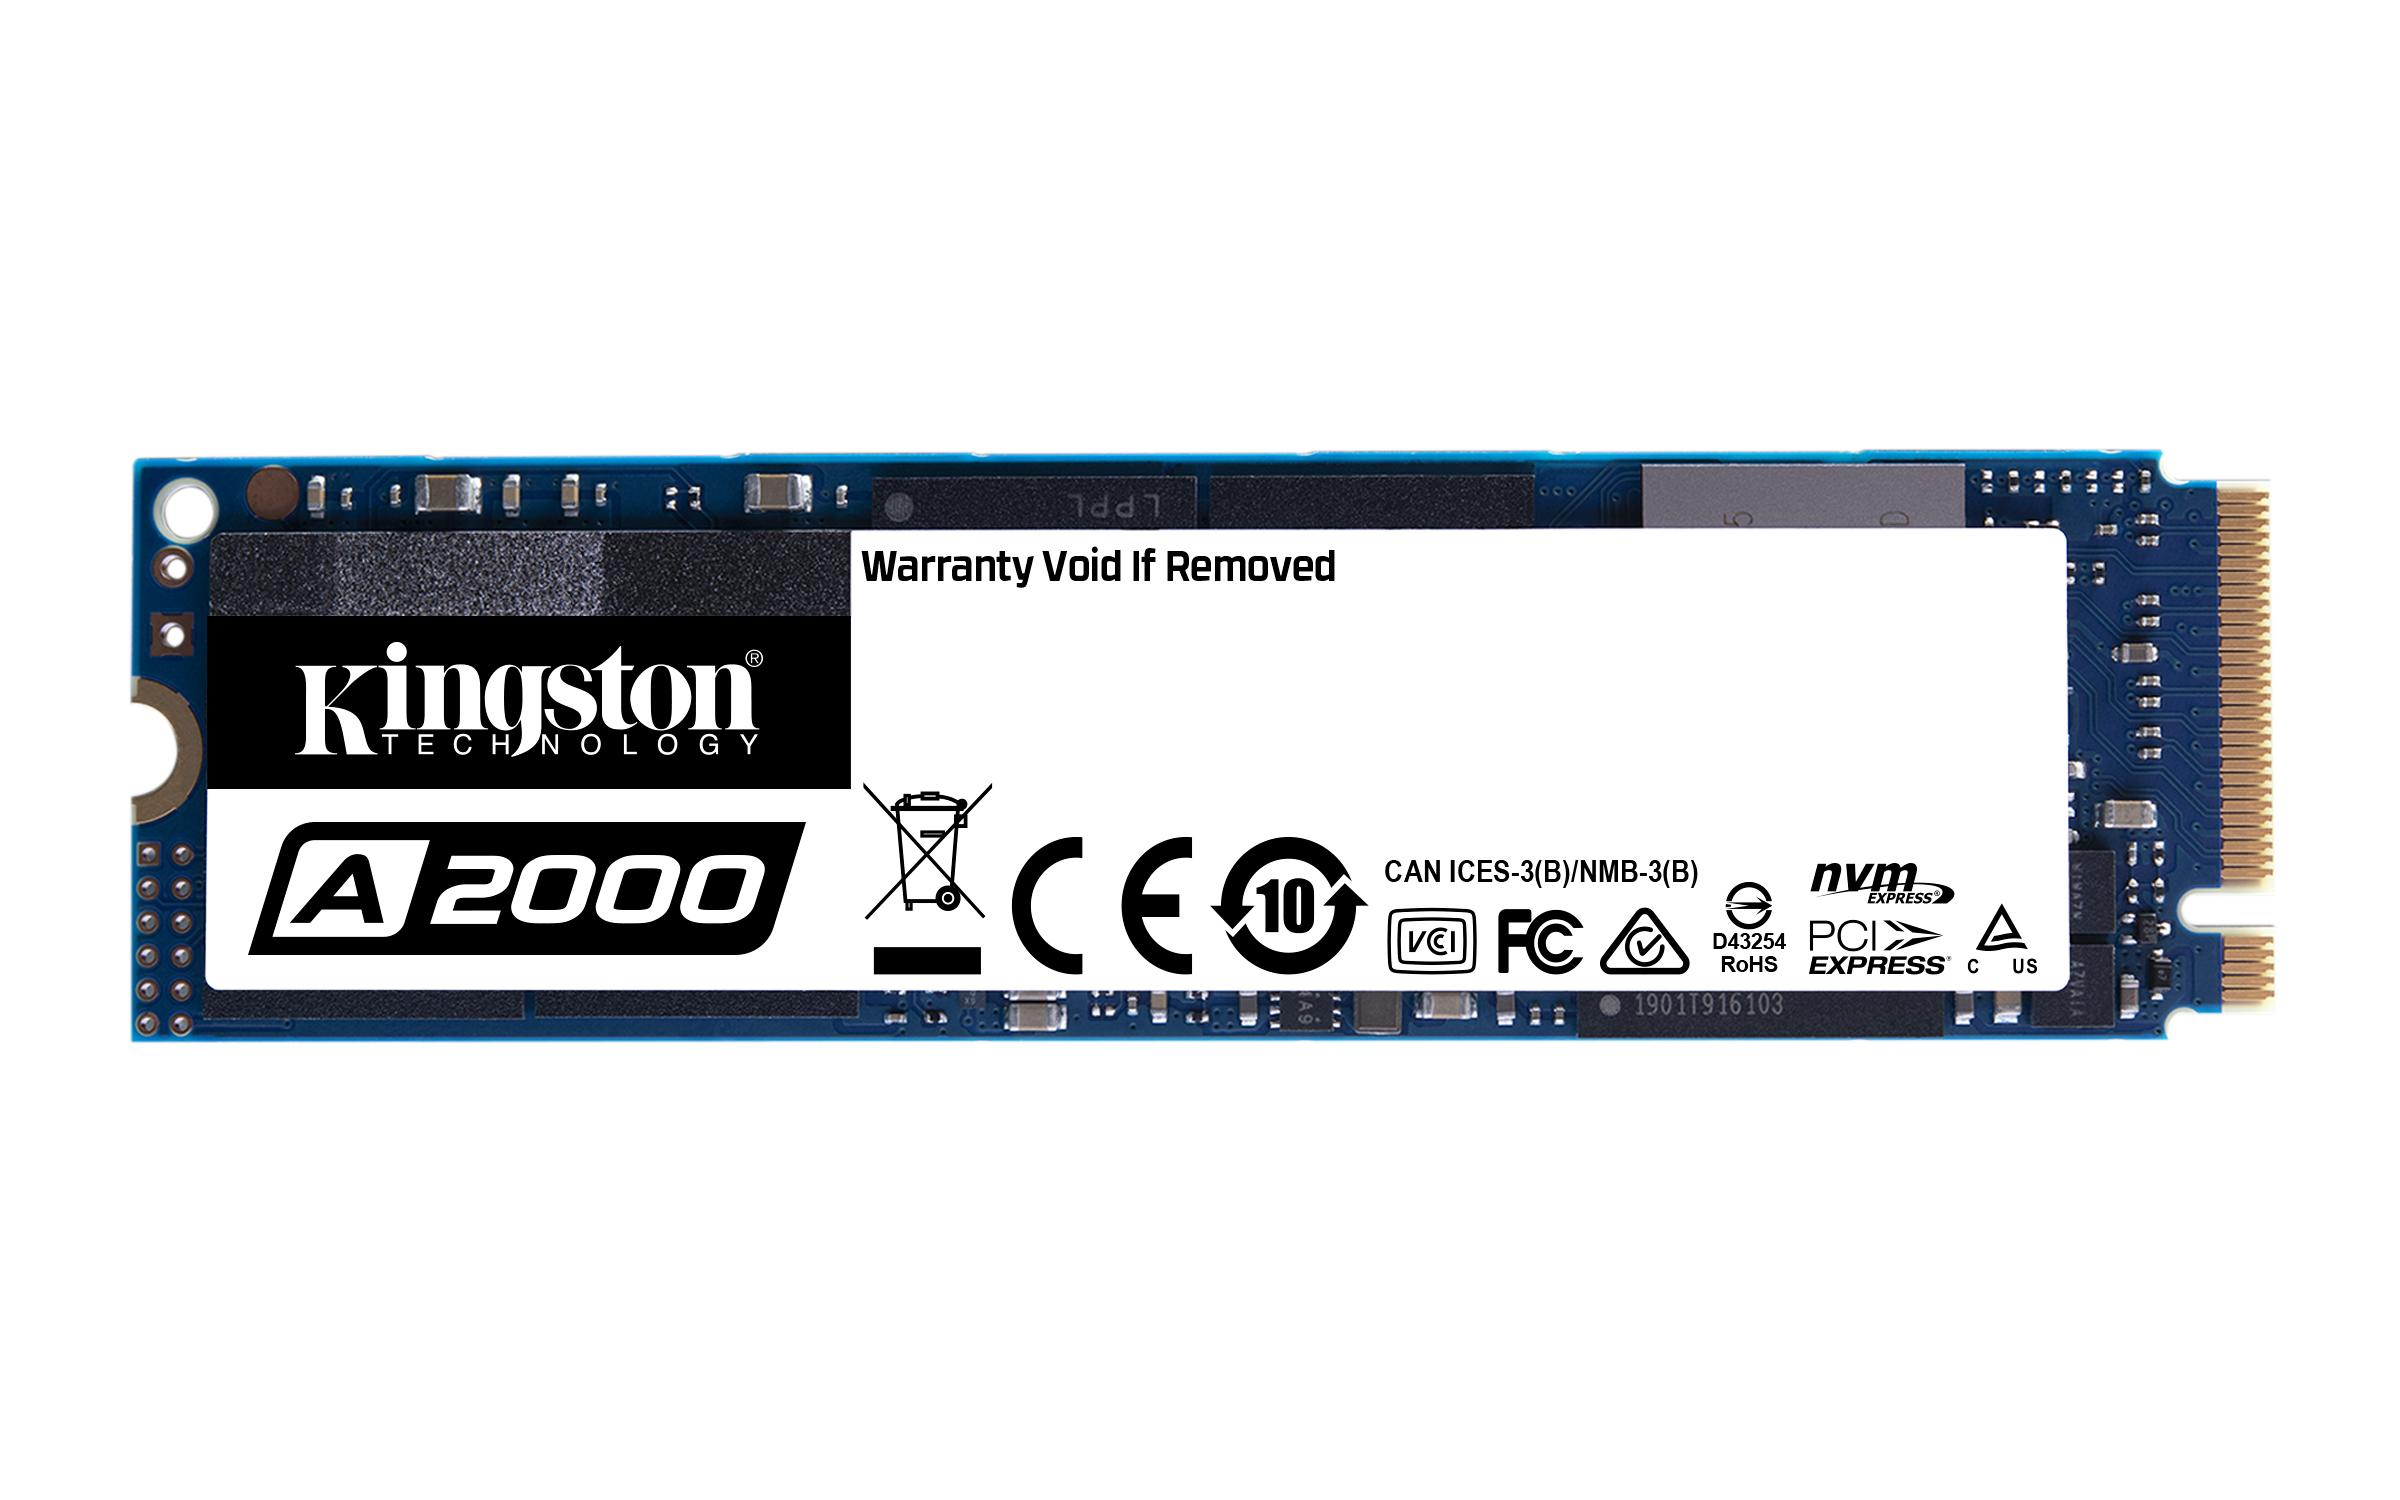 Solid State Drive (SSD) KINGSTON A2000 M.2-2280 PCIe Nvme 500GB-2